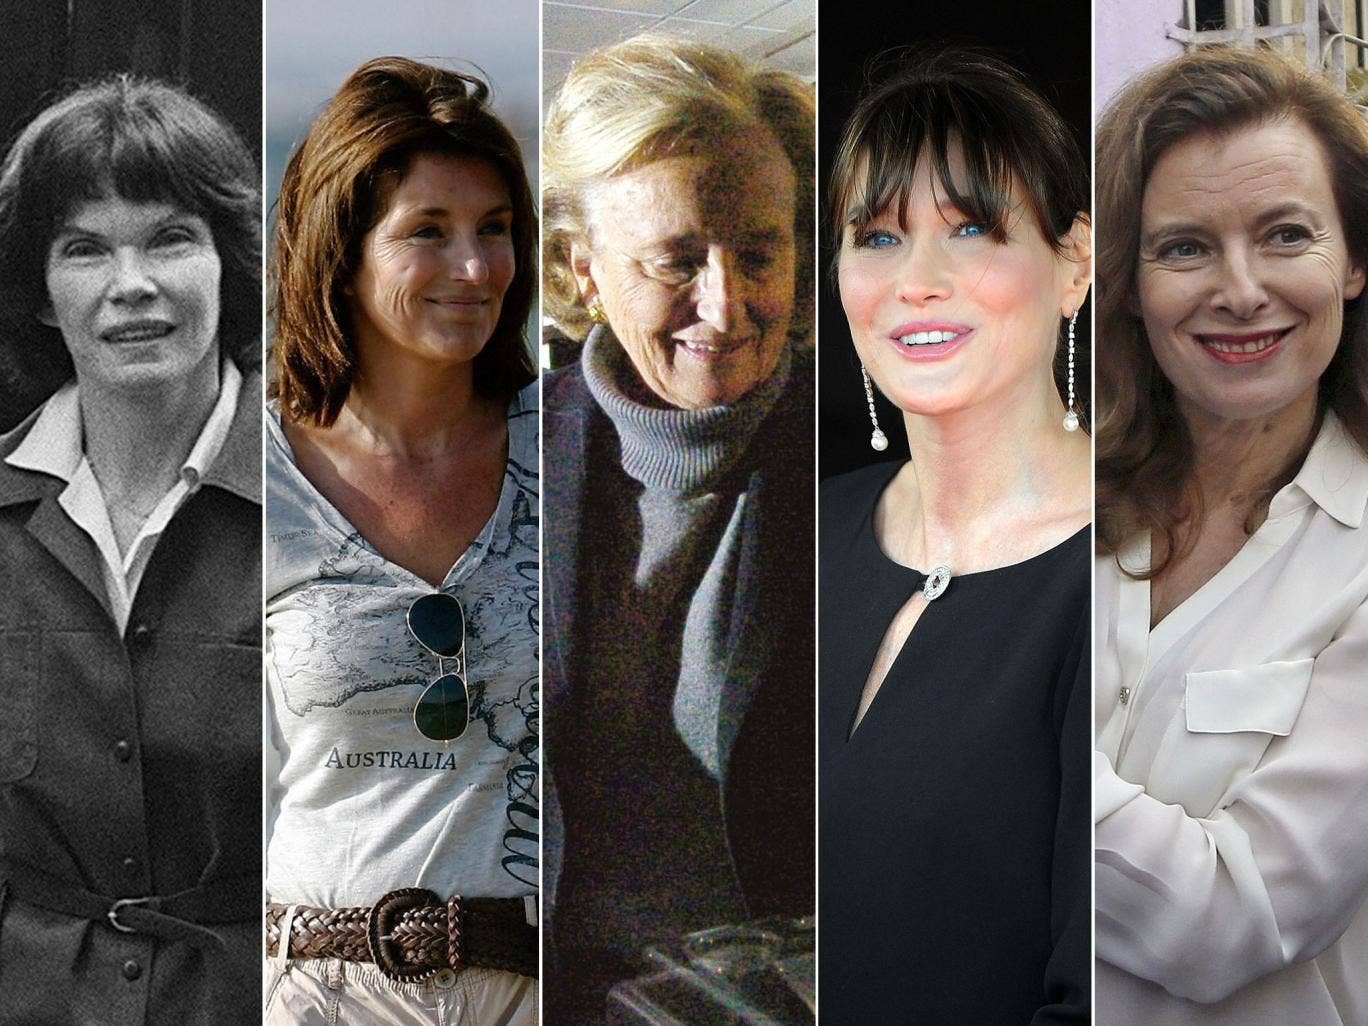 First ladies, from left to right: Danielle Mitterrand, Cecilia Attias, Bernadette Chirac, Carla Bruni-Sarkozy and Valerie Trierweiler